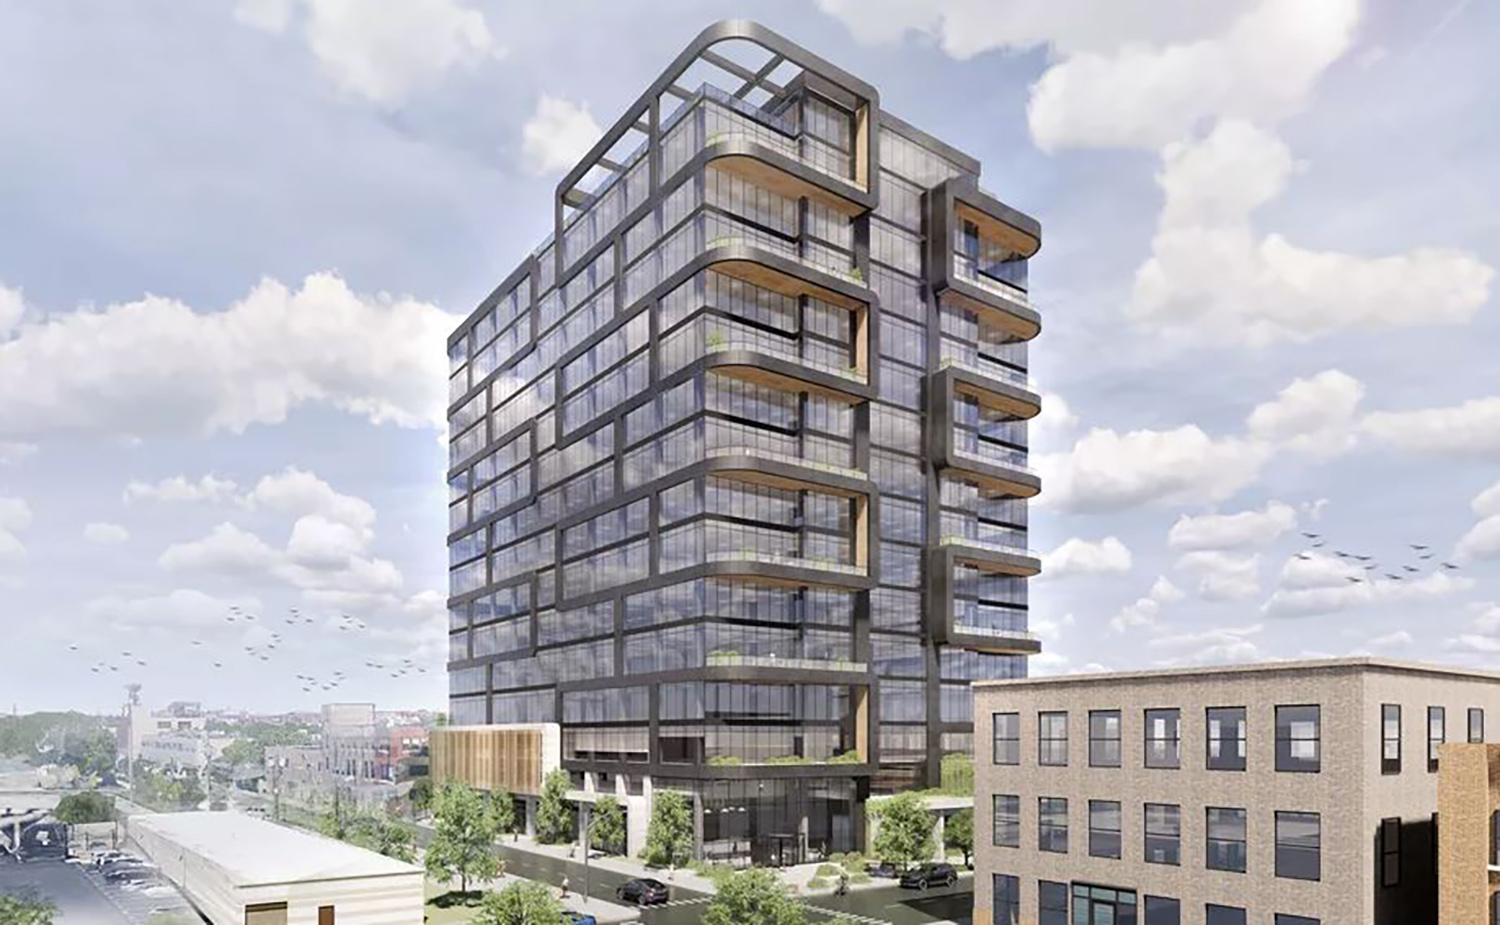 Rendering of Fulton Labs at 400 N Aberdeen Street. Rendering courtesy of ESG Architects